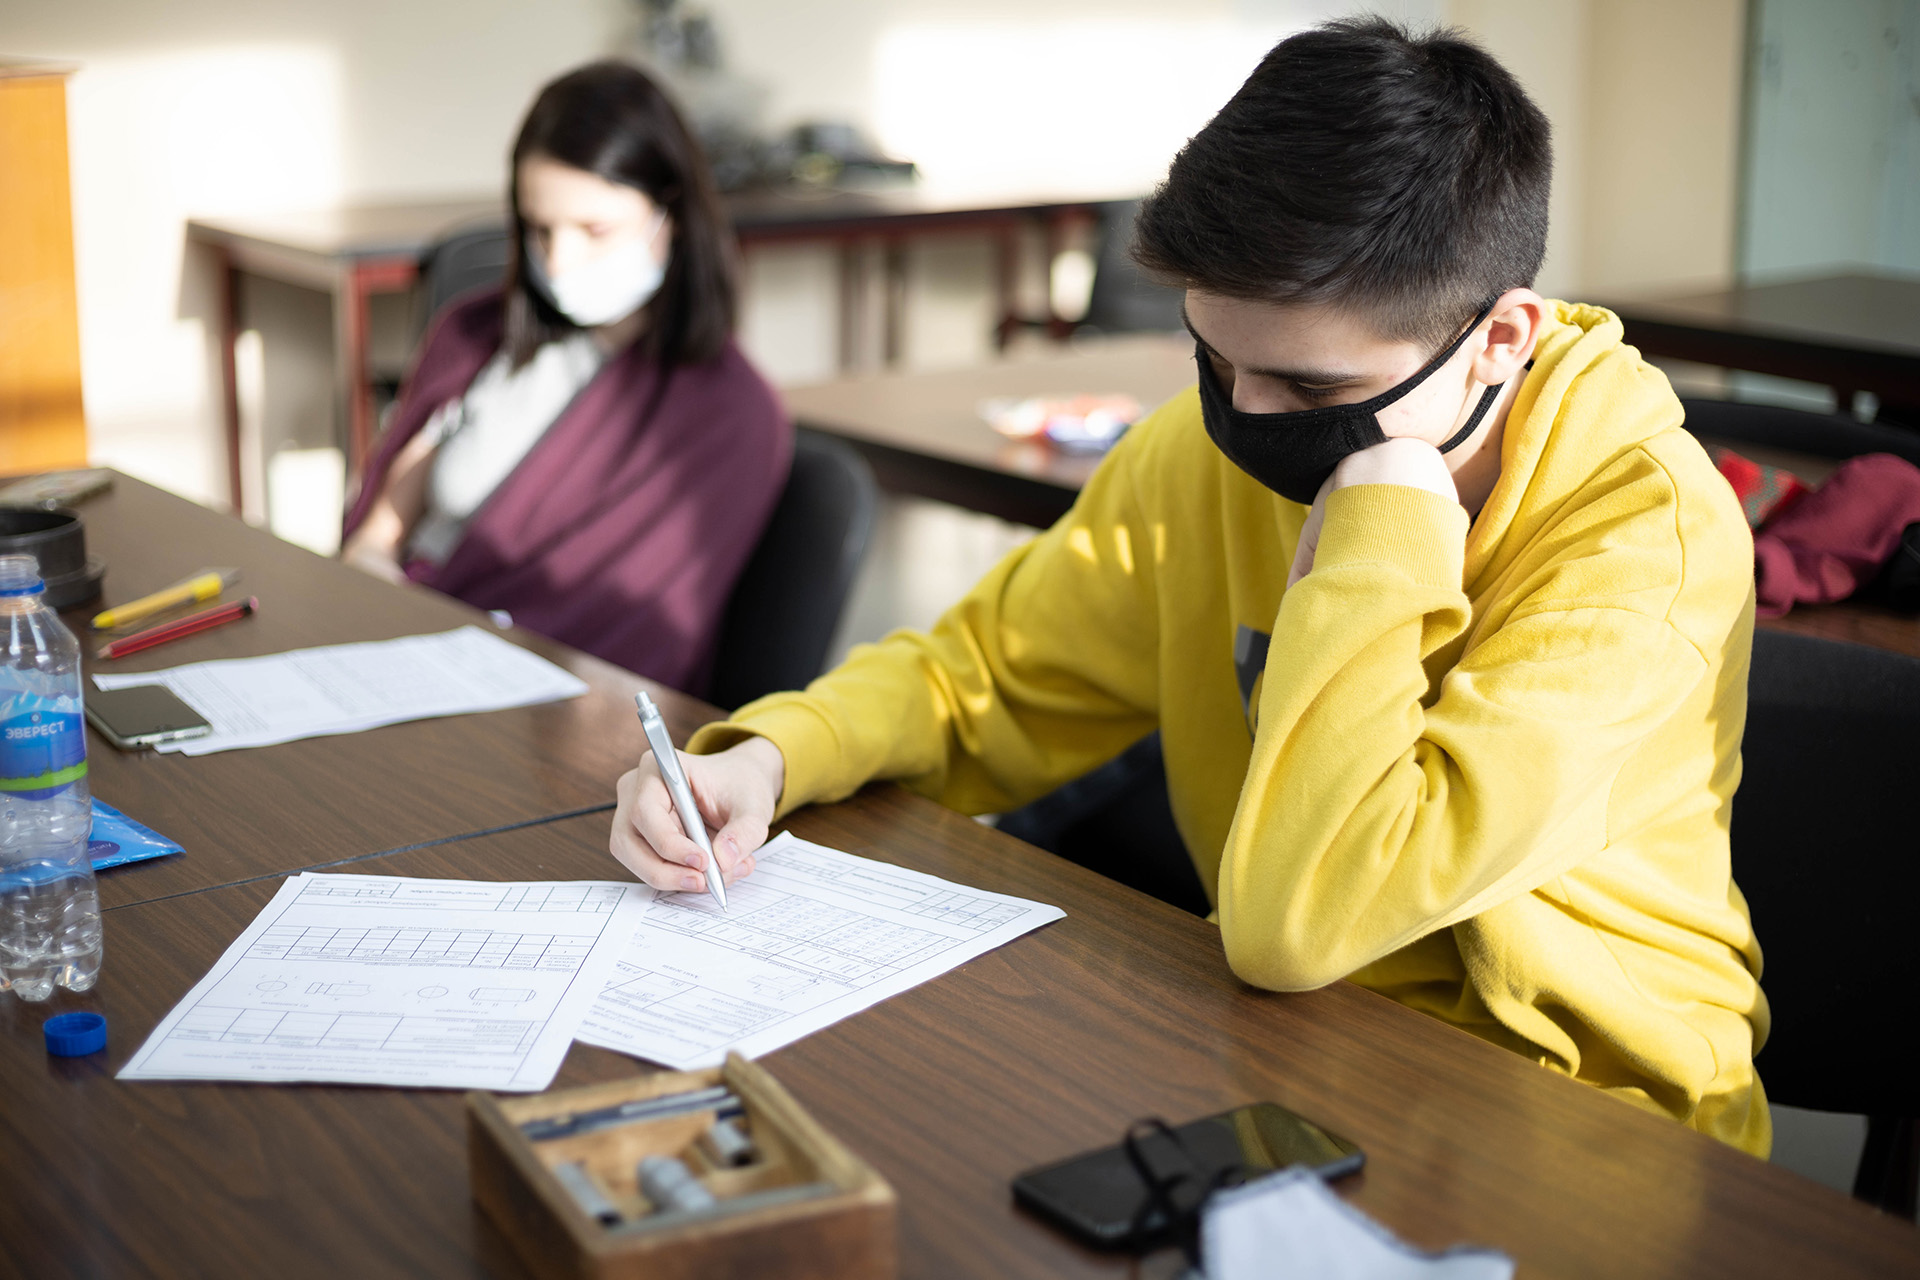 Students working wearing masks